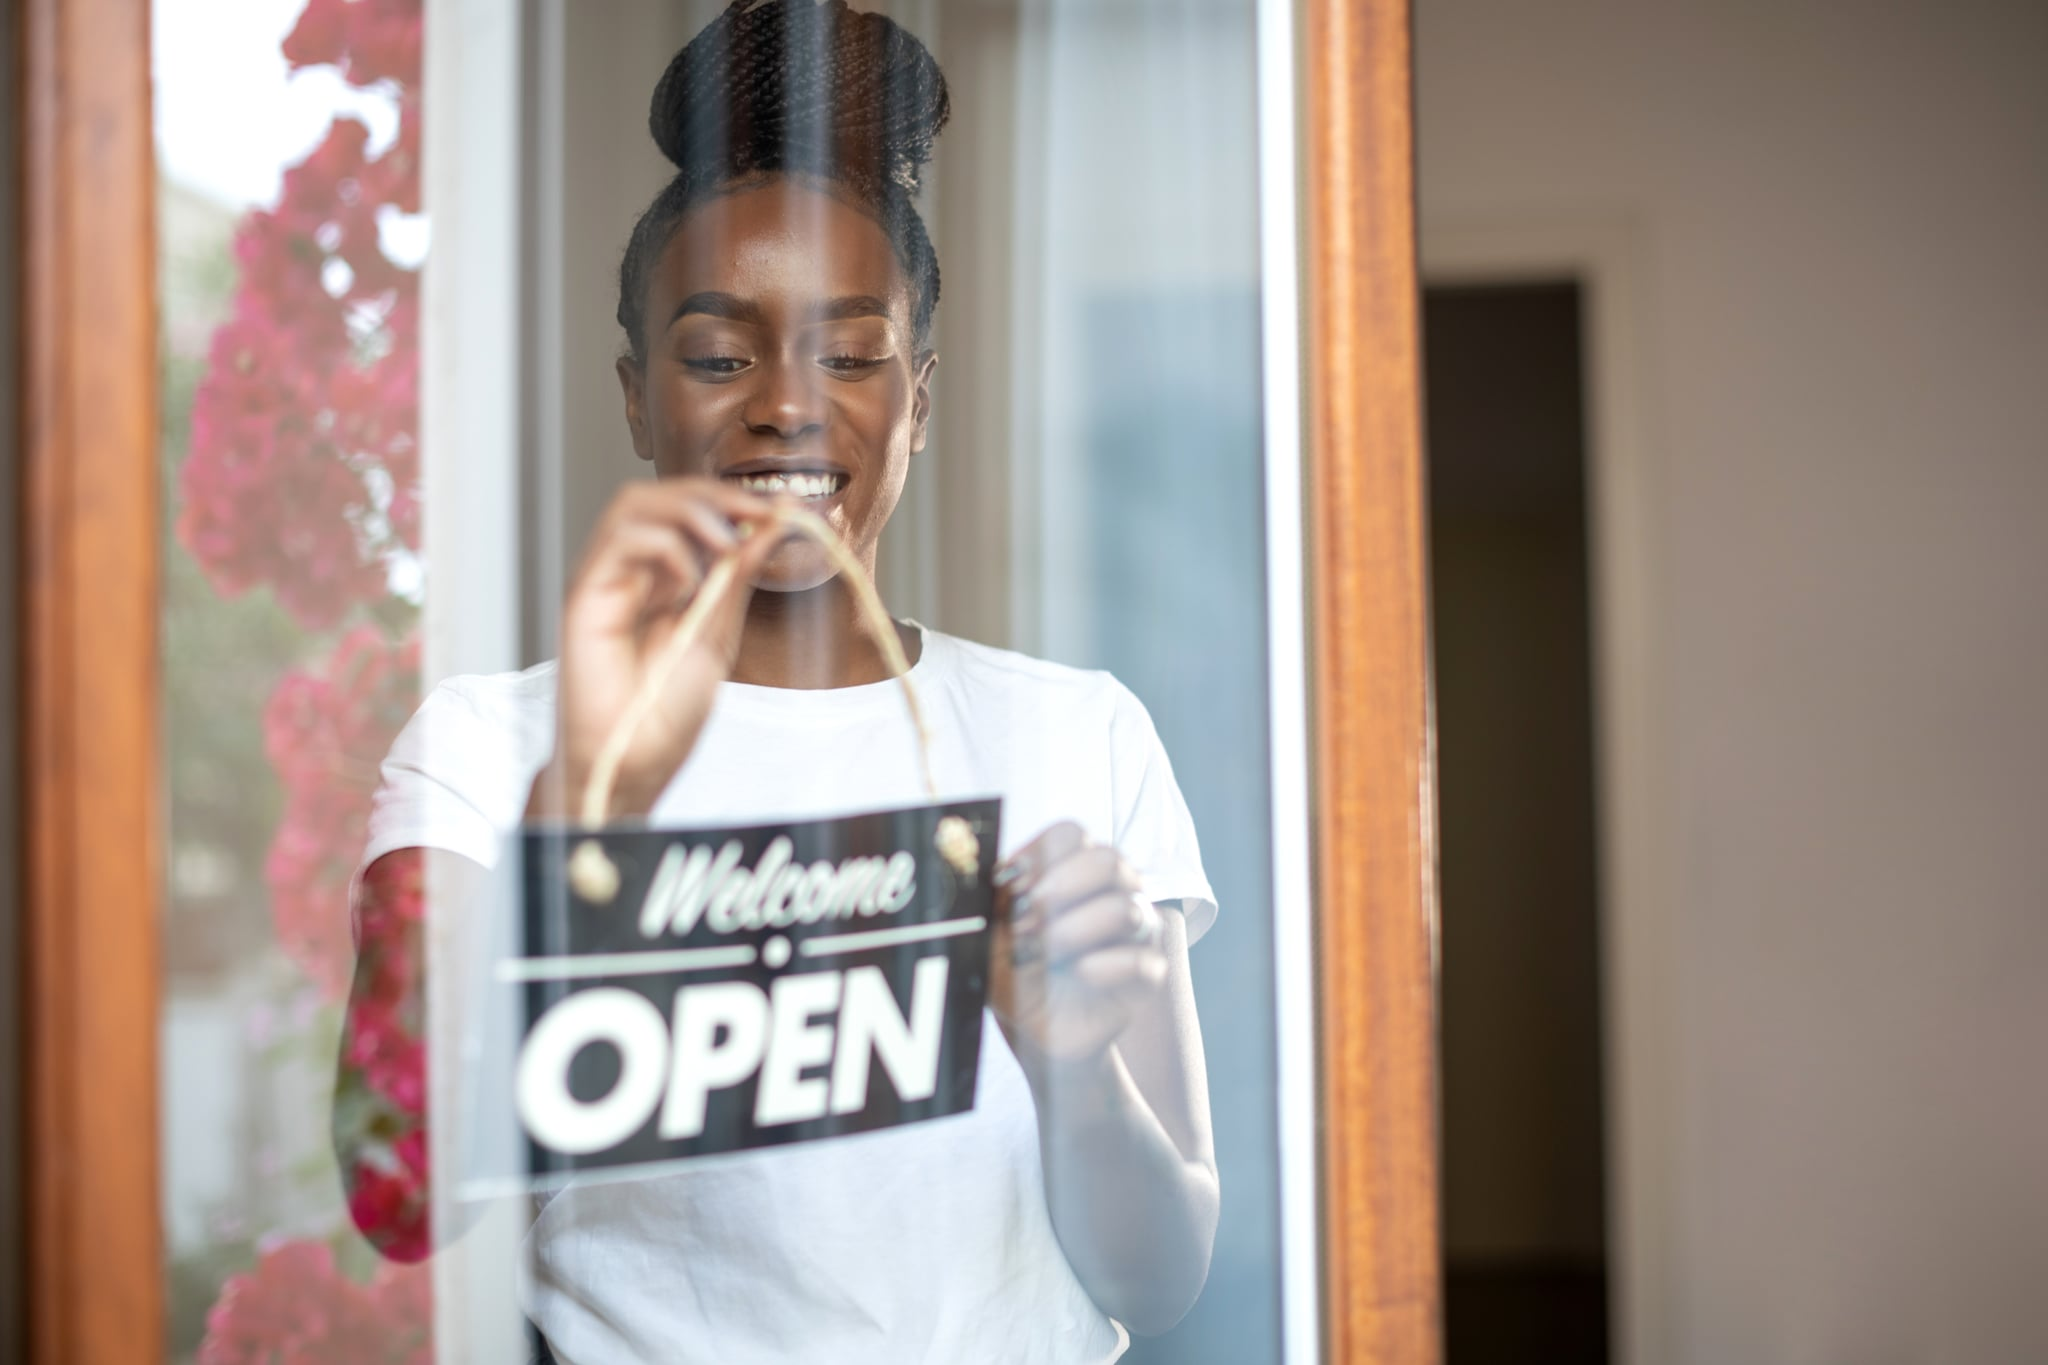 Afro american woman holding open sign in a small business shop after Covid-19 pandemic.